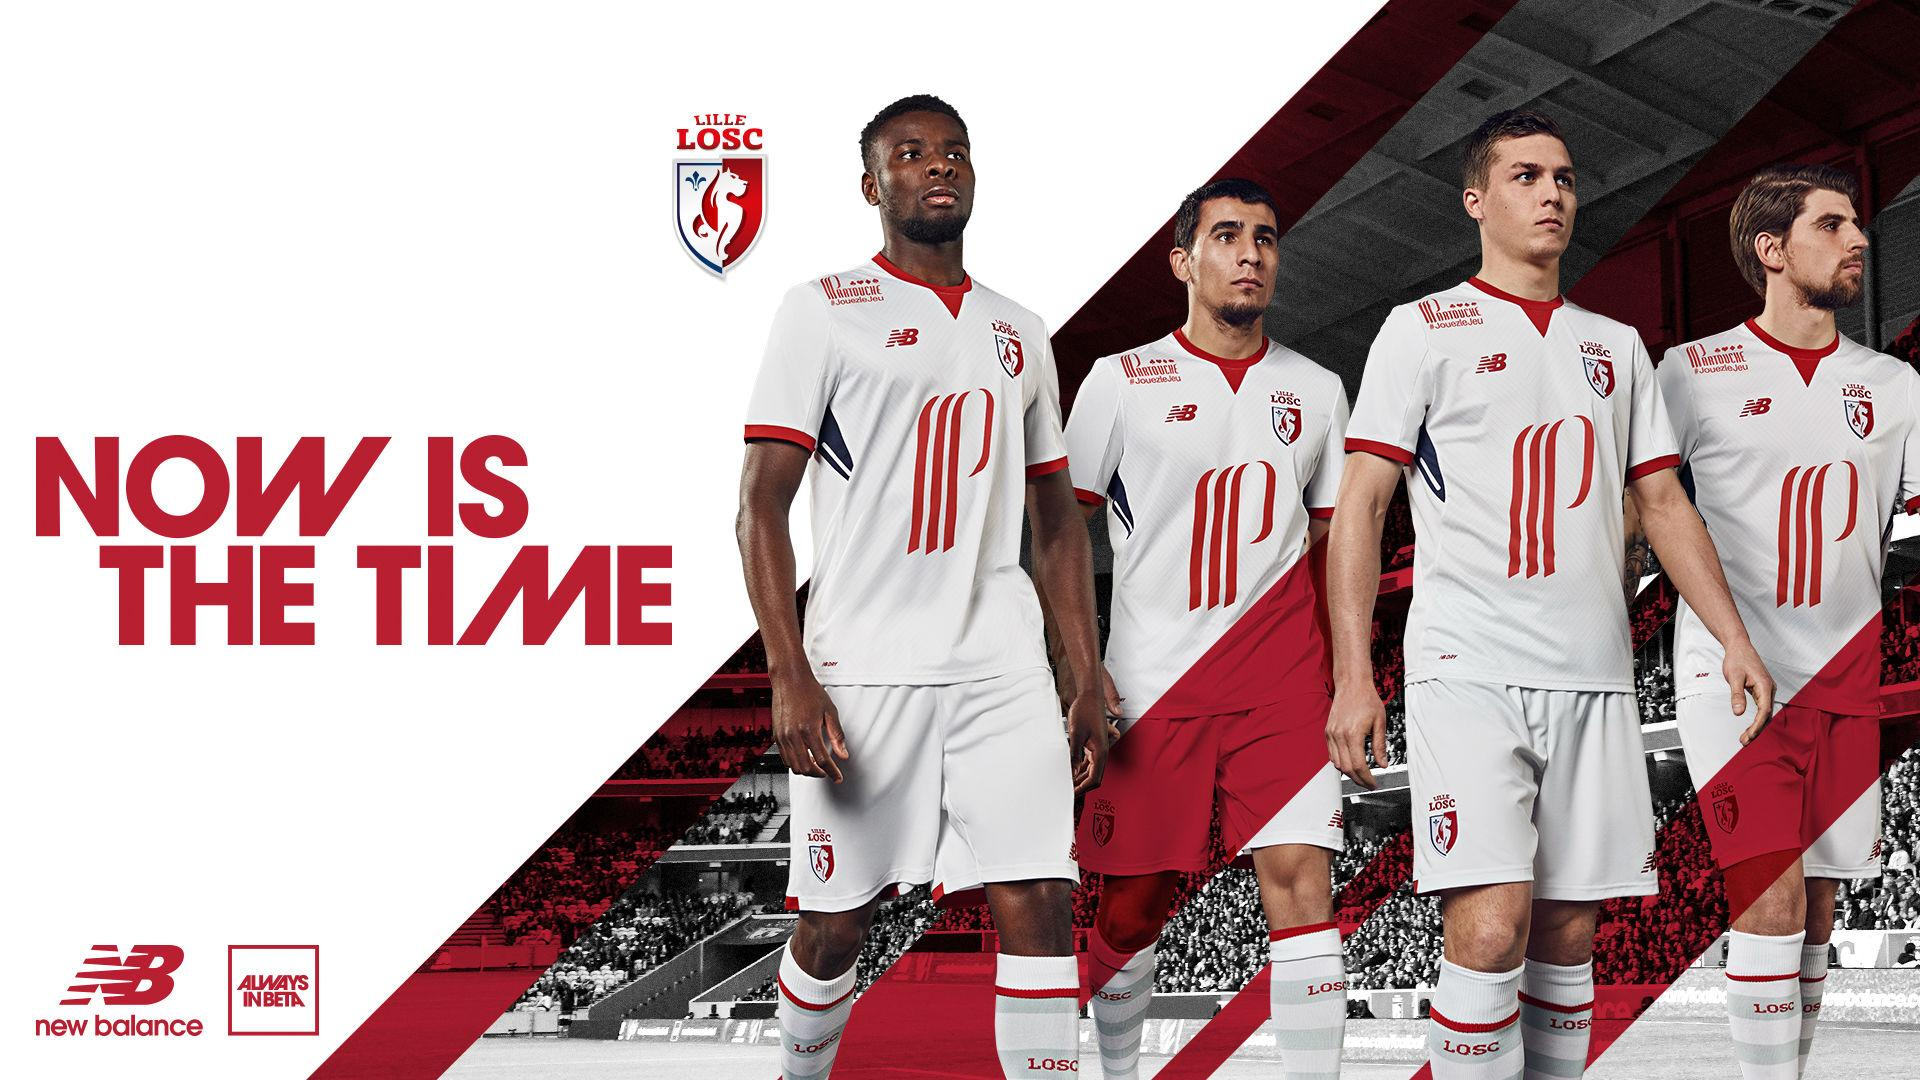 1920x1080 - Lille OSC Wallpapers 21